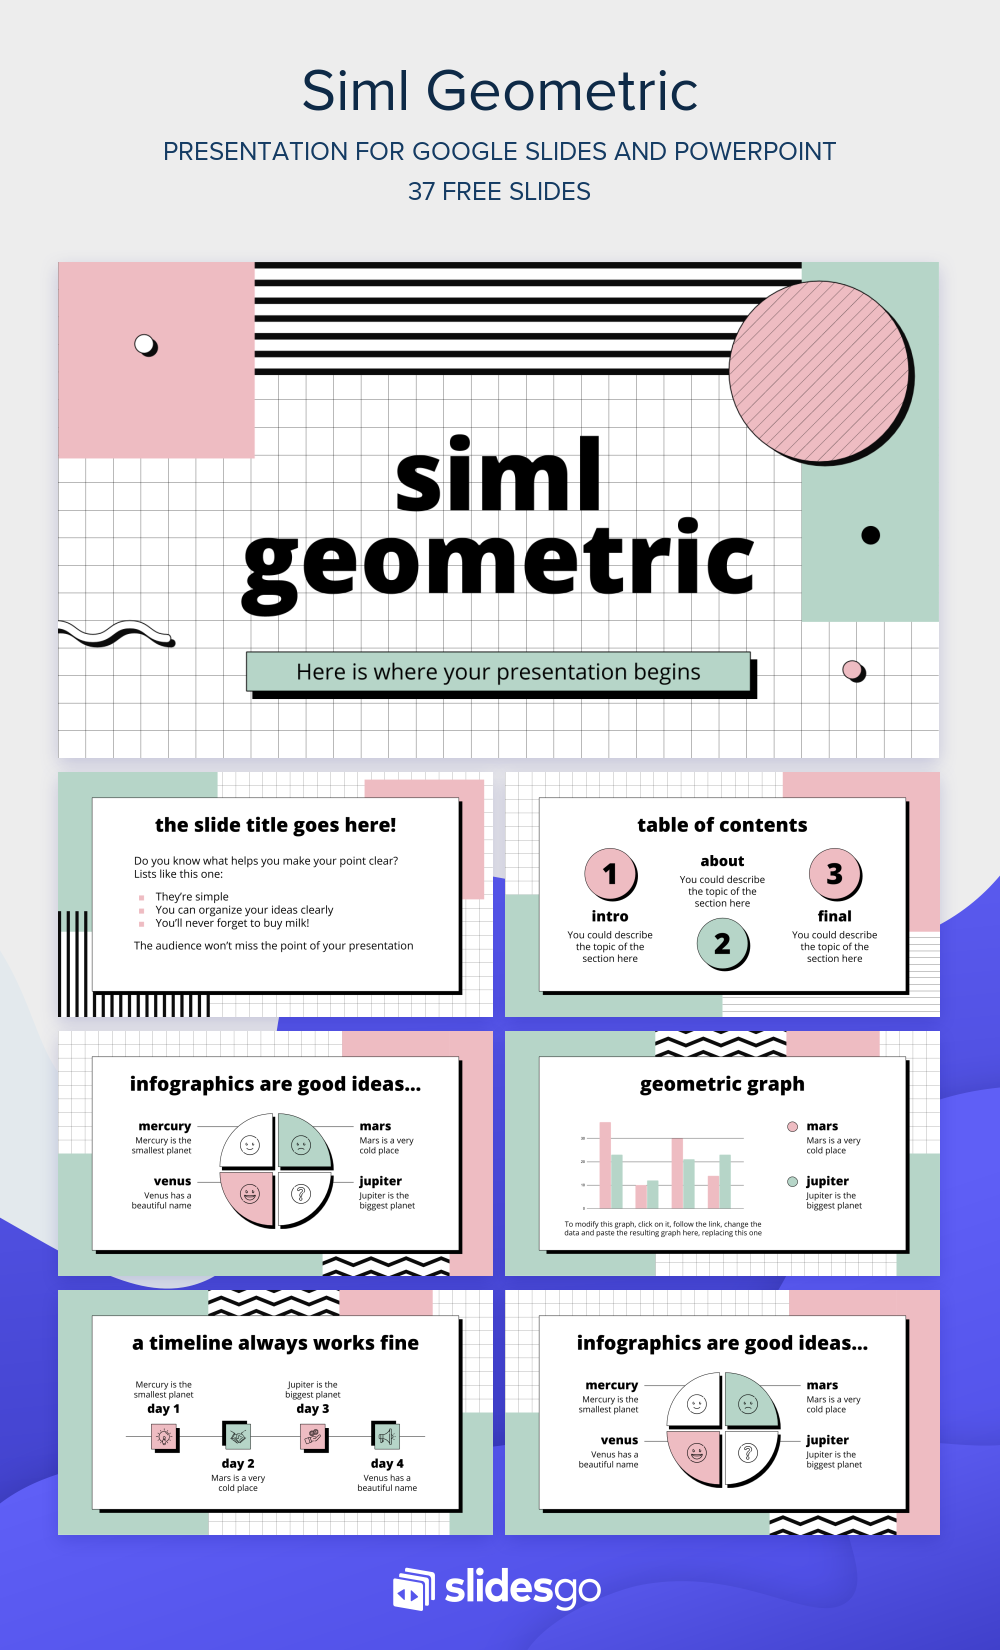 Download And Edit This Cool Geometric Presentation It S Available As Goog Powerpoint Slide Designs Powerpoint Presentation Design Presentation Design Template